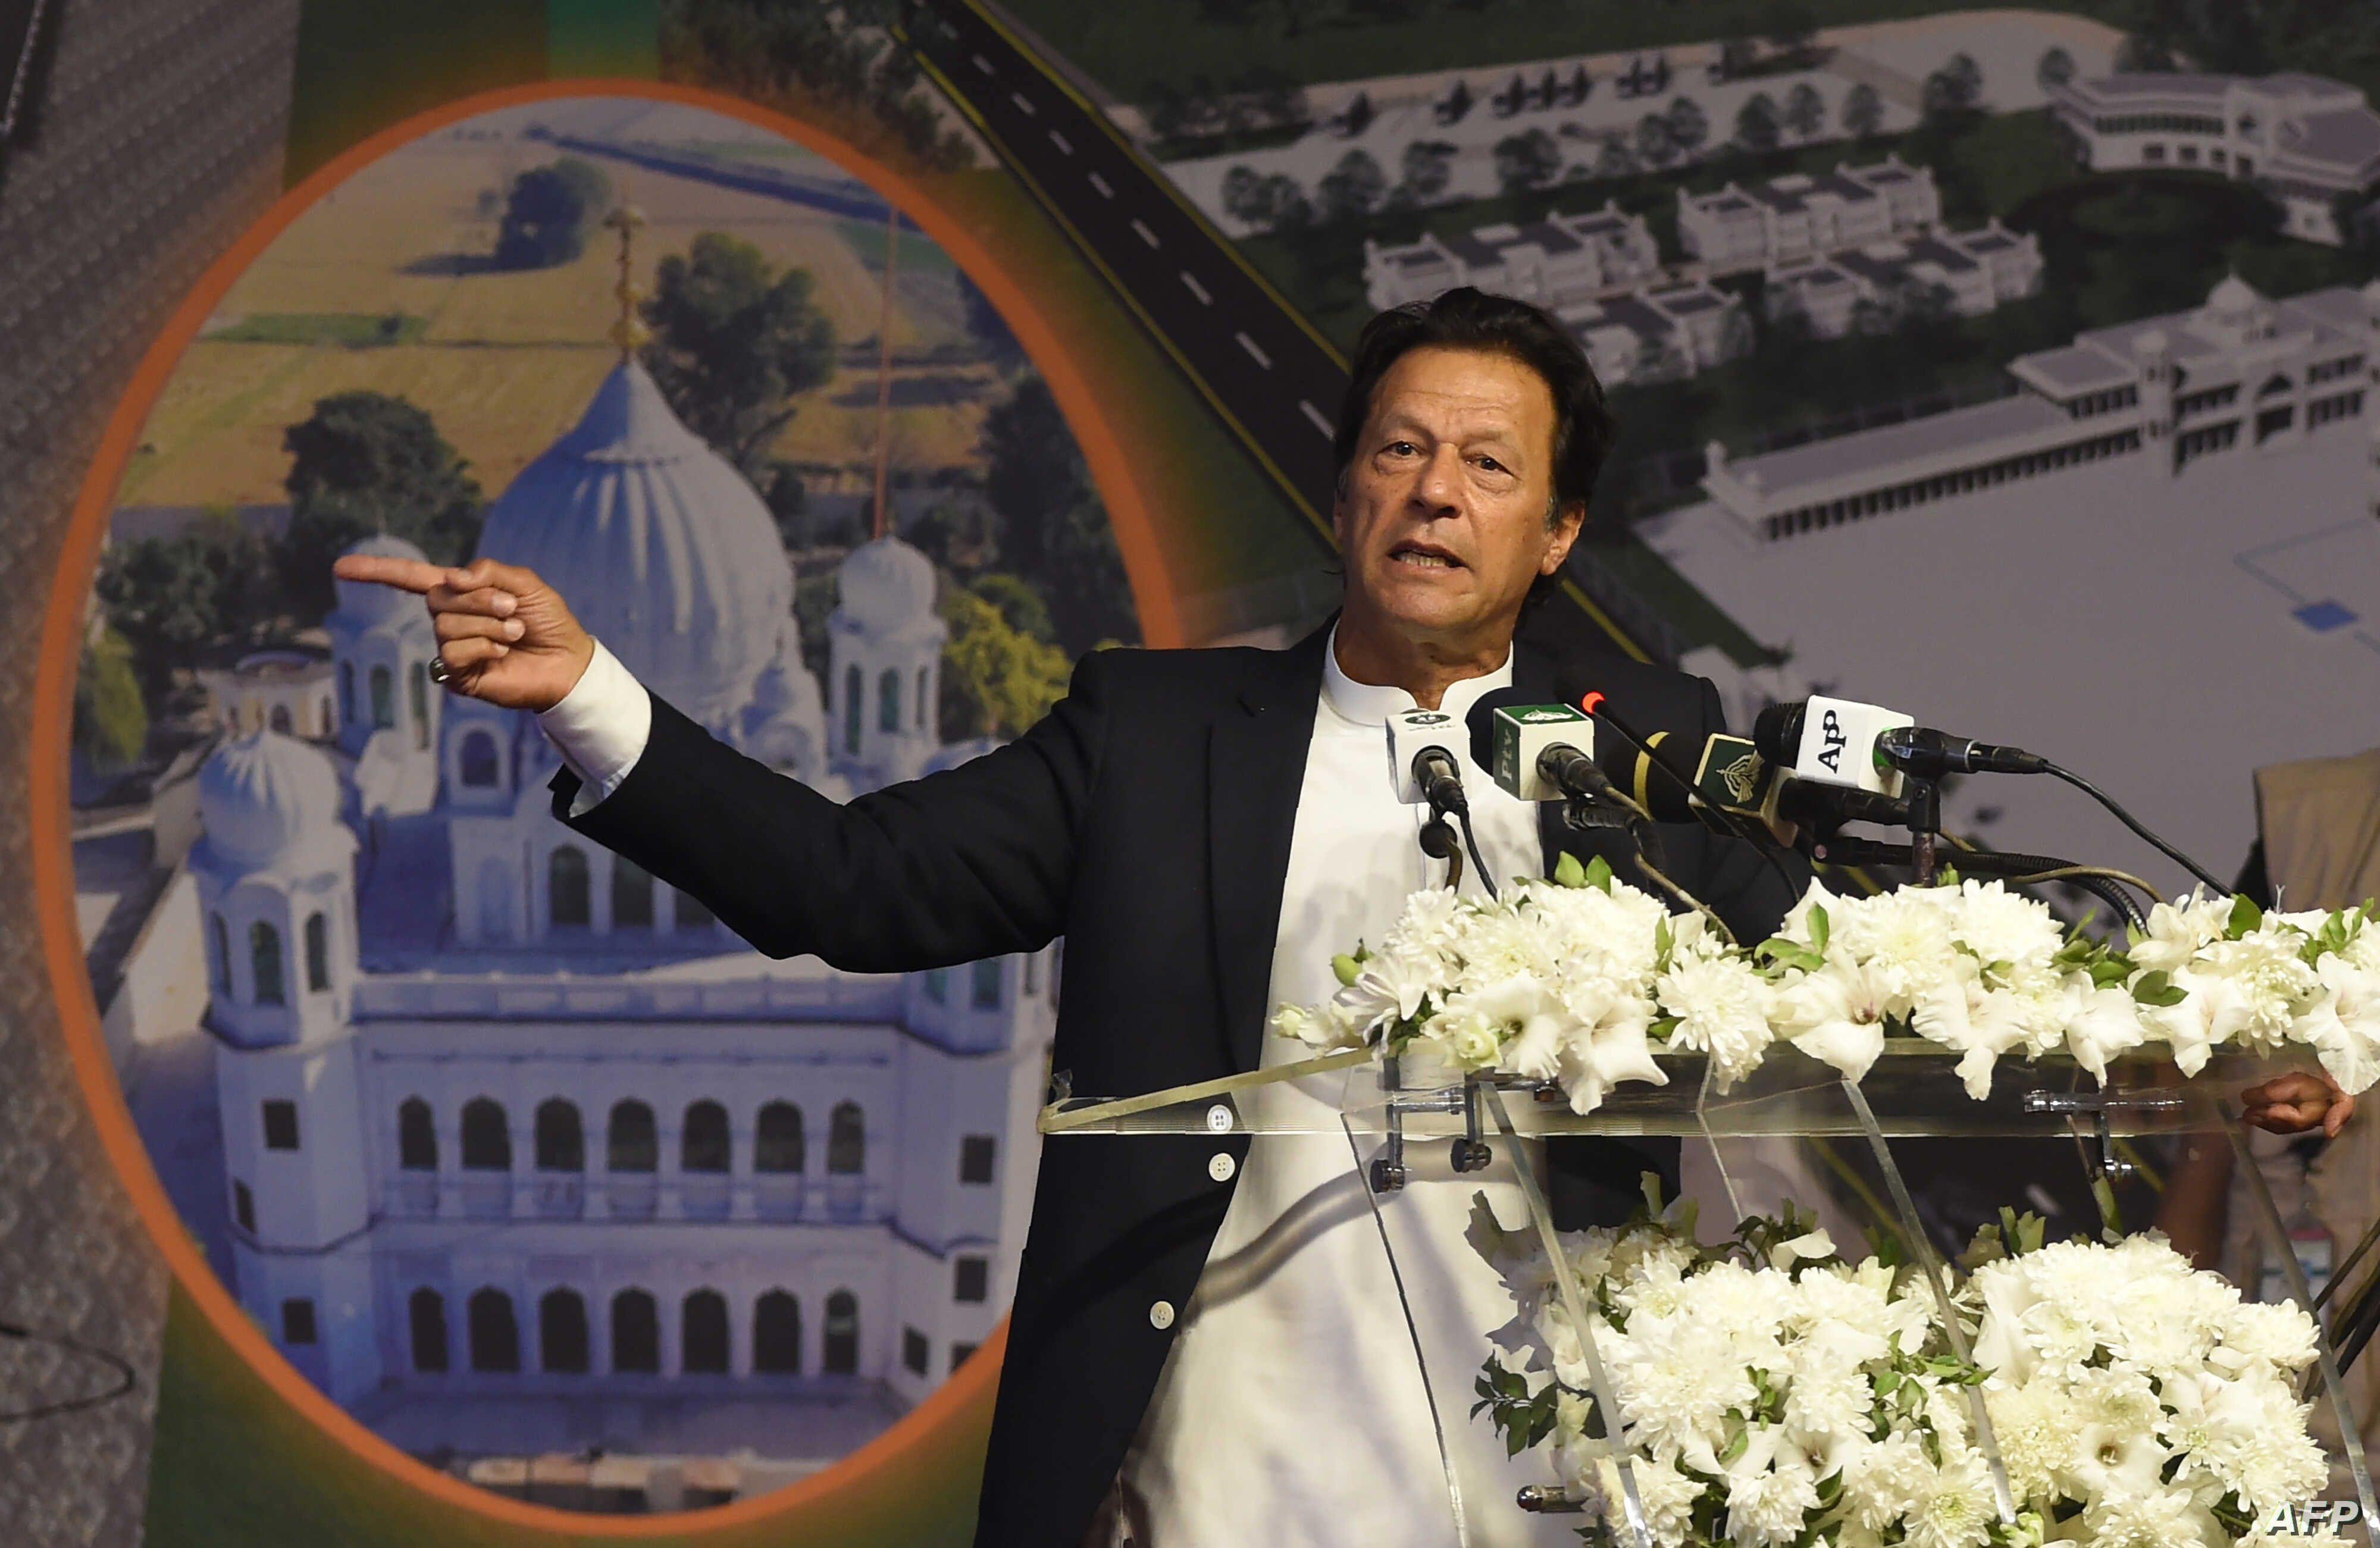 Pakistan Prime Minister Imran Khan (C) addresses the groundbreaking ceremony for the Kartarpur Corridor in Kartarpur on November 28, 2018. - Pakistan Prime Minister Imran Khan launched the groundbreaking ceremony of the religious corridor between Ind...